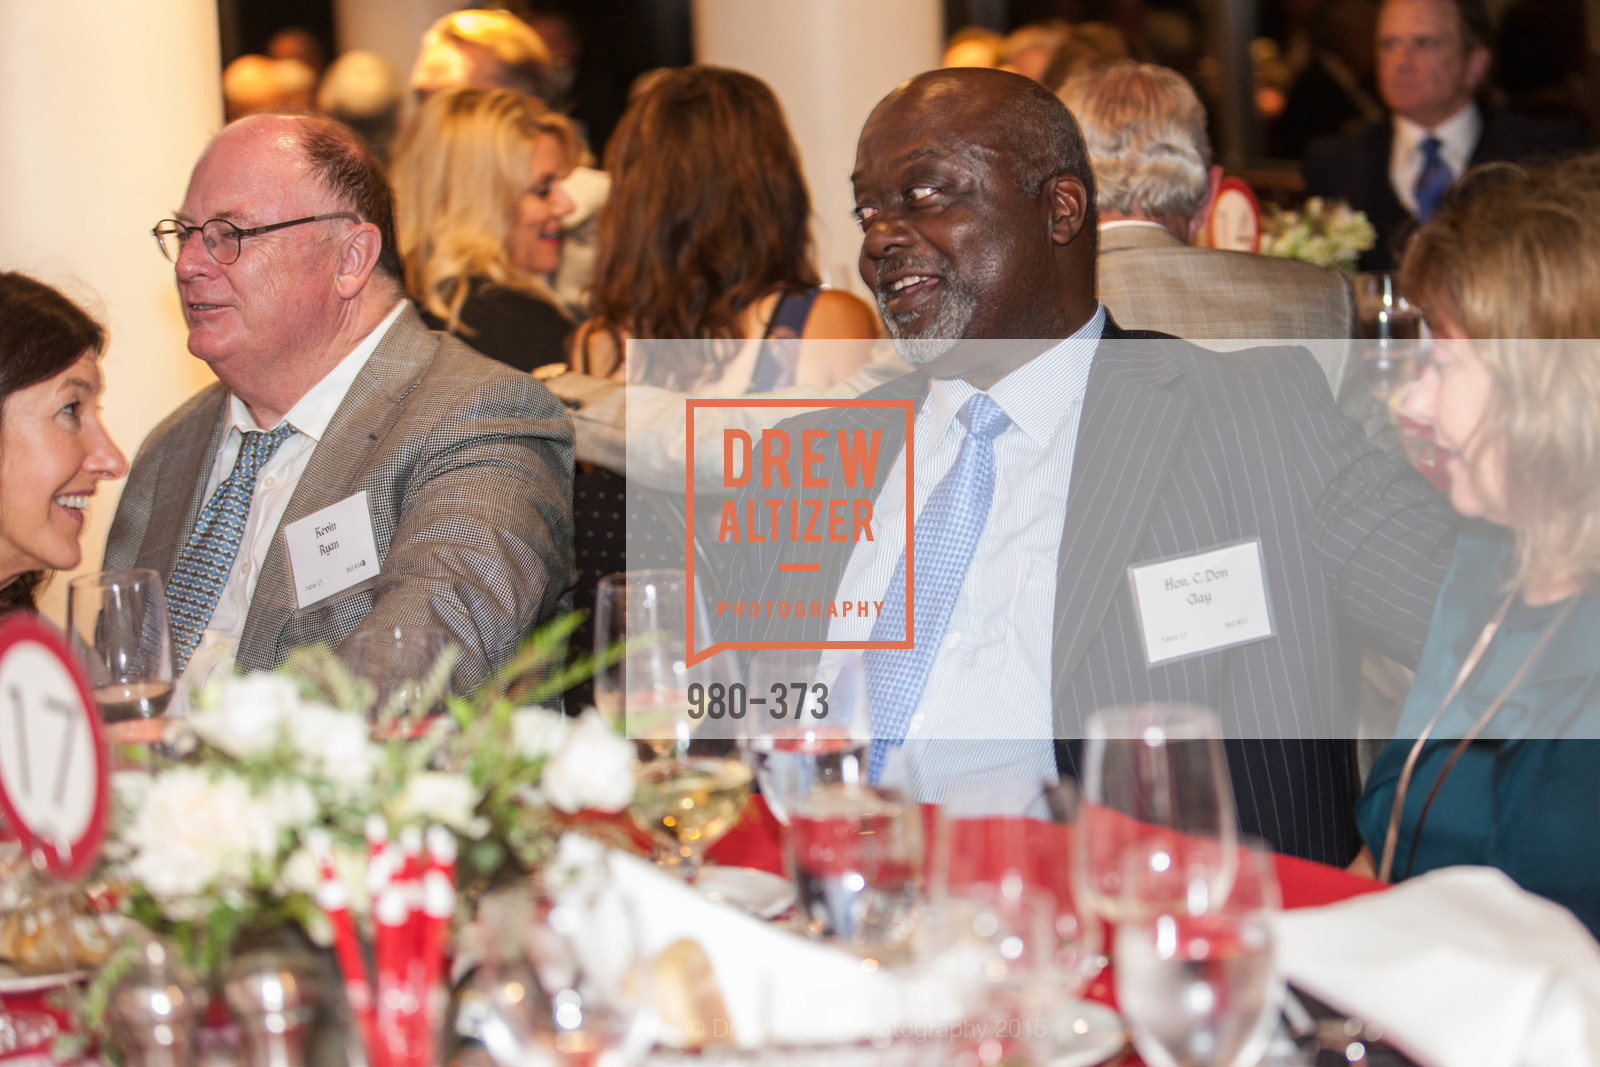 Kevin Ryan, C. Don Clay, Sovereign Order of Malta Presents: A Knight for Champions, 7th Annual Silver Chalice Awards Dinner, St. Francis Yacht Club. 99 Yacht Rd, October 13th, 2015,Drew Altizer, Drew Altizer Photography, full-service agency, private events, San Francisco photographer, photographer california